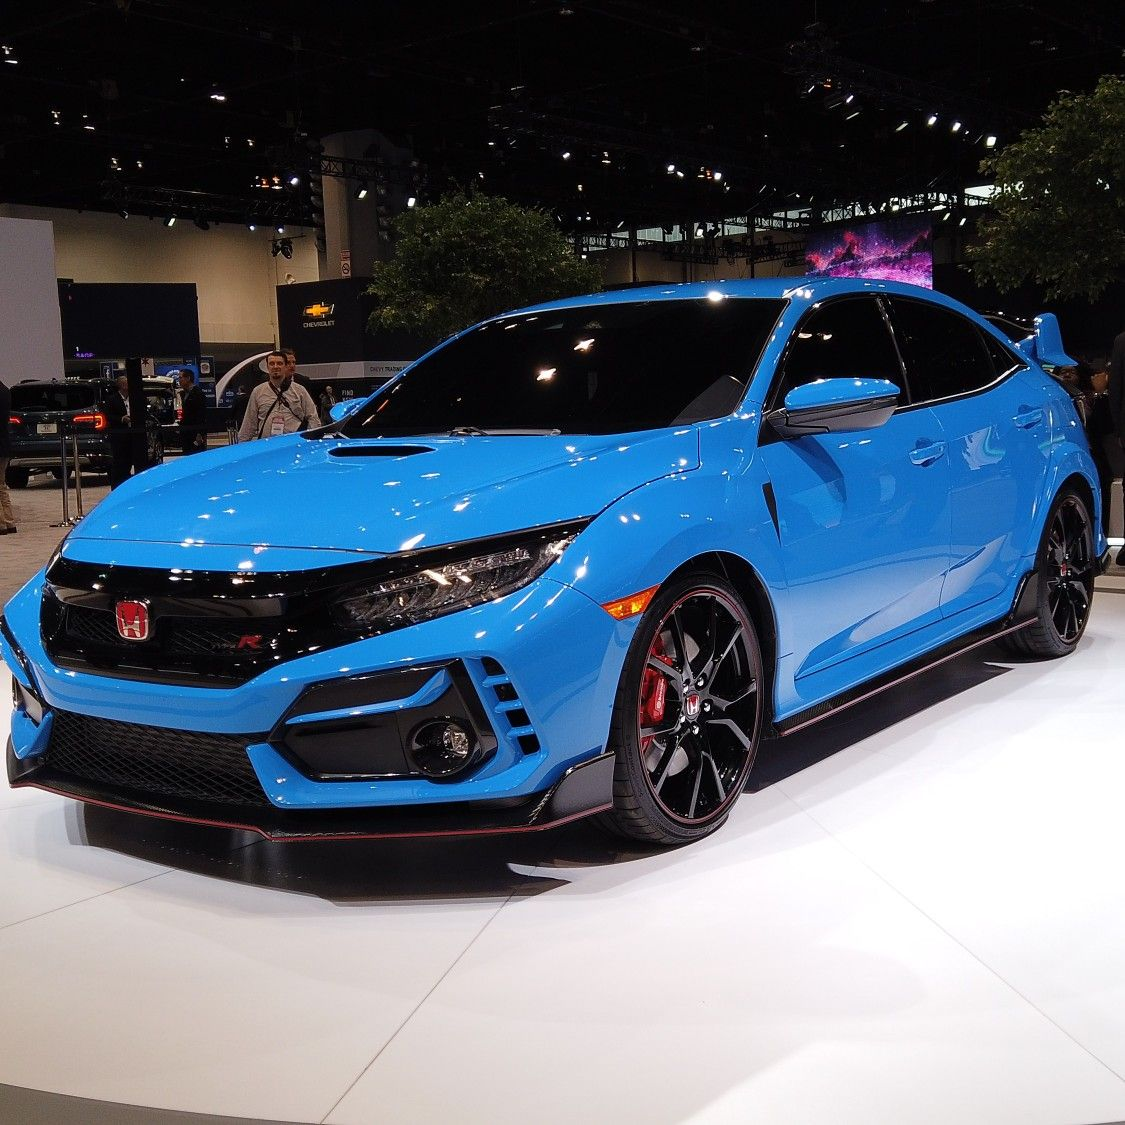 Honda finally reveal the 2020 Type R at the Chicago Auto